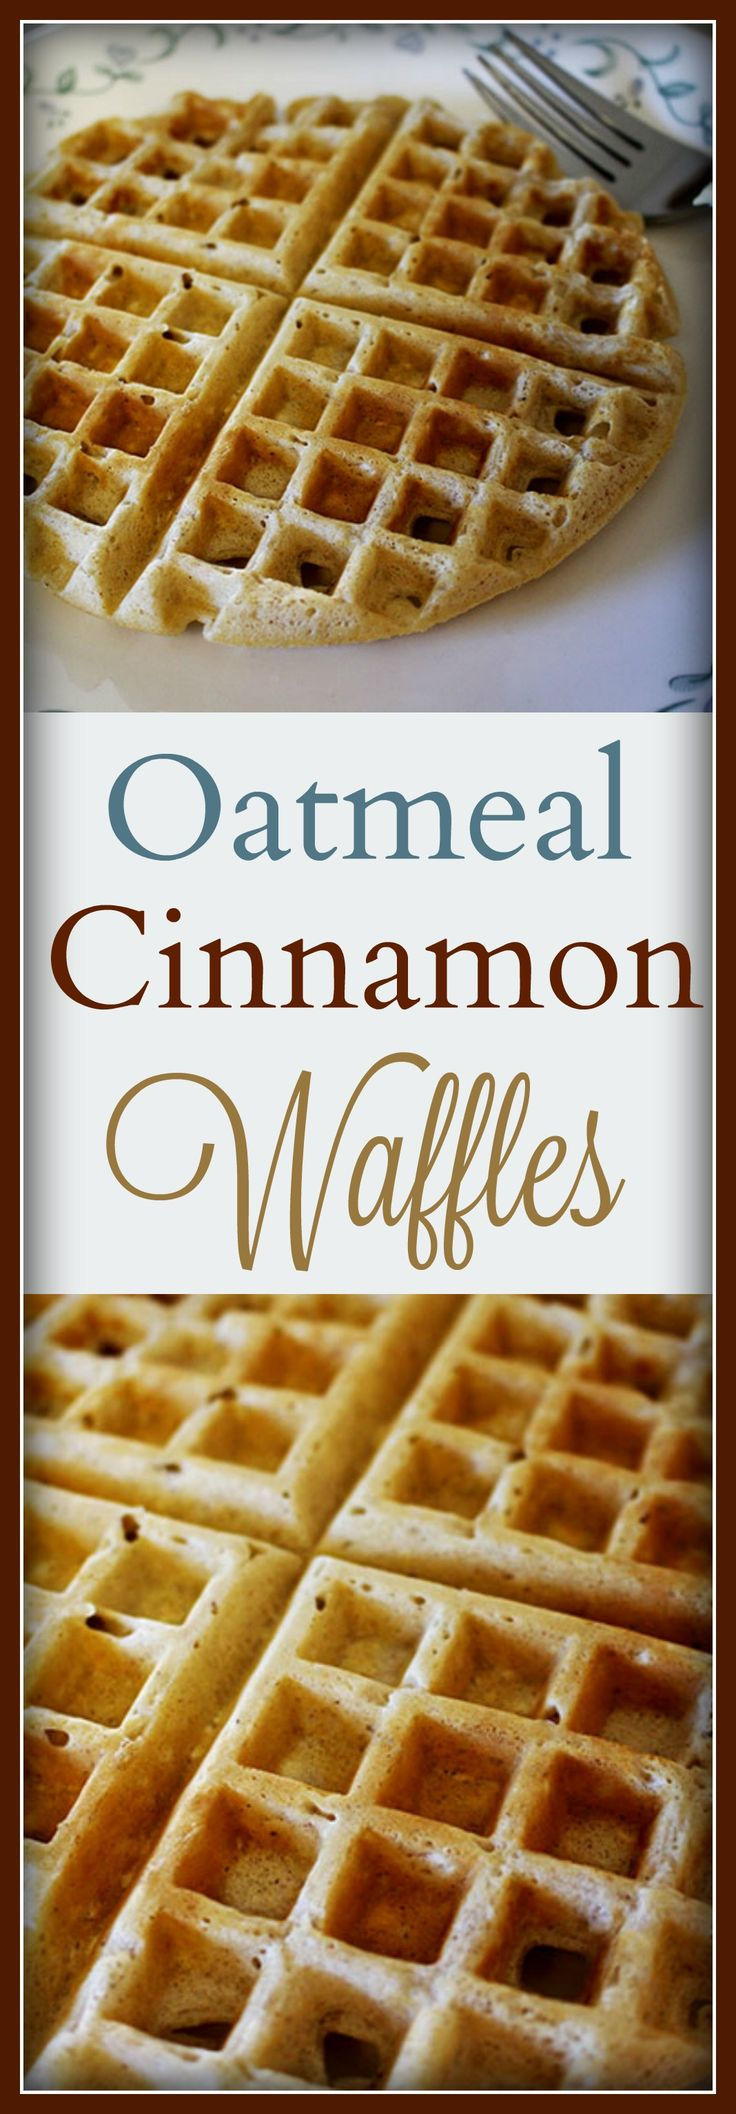 Oatmeal Cinnamon Waffles , Breakfast , Recipe Treasures